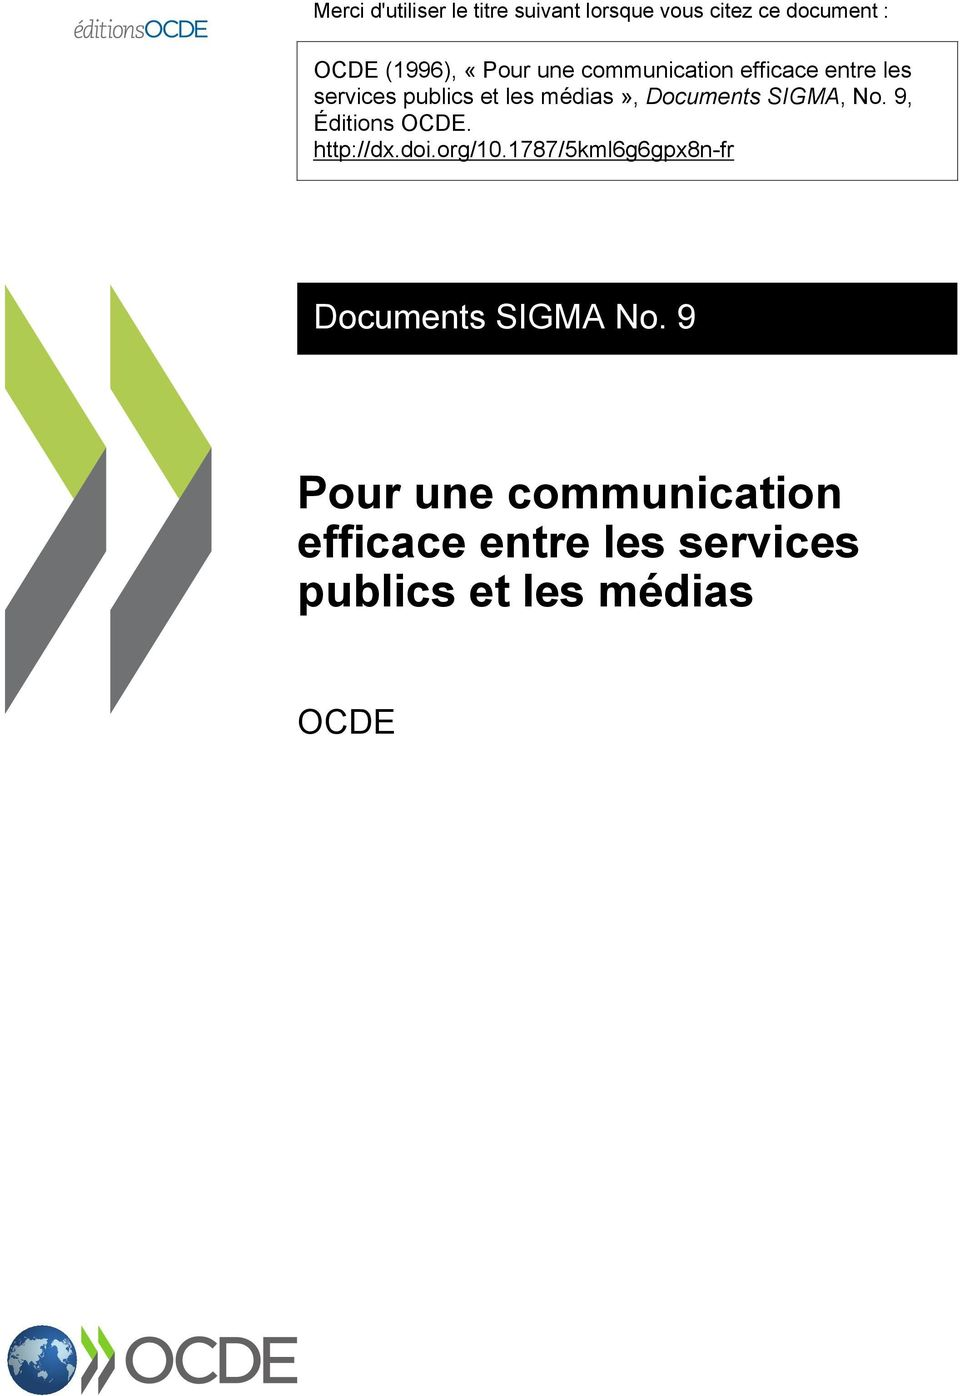 Documents SIGMA, No. 9, Éditions OCDE. http://dx.doi.org/10.